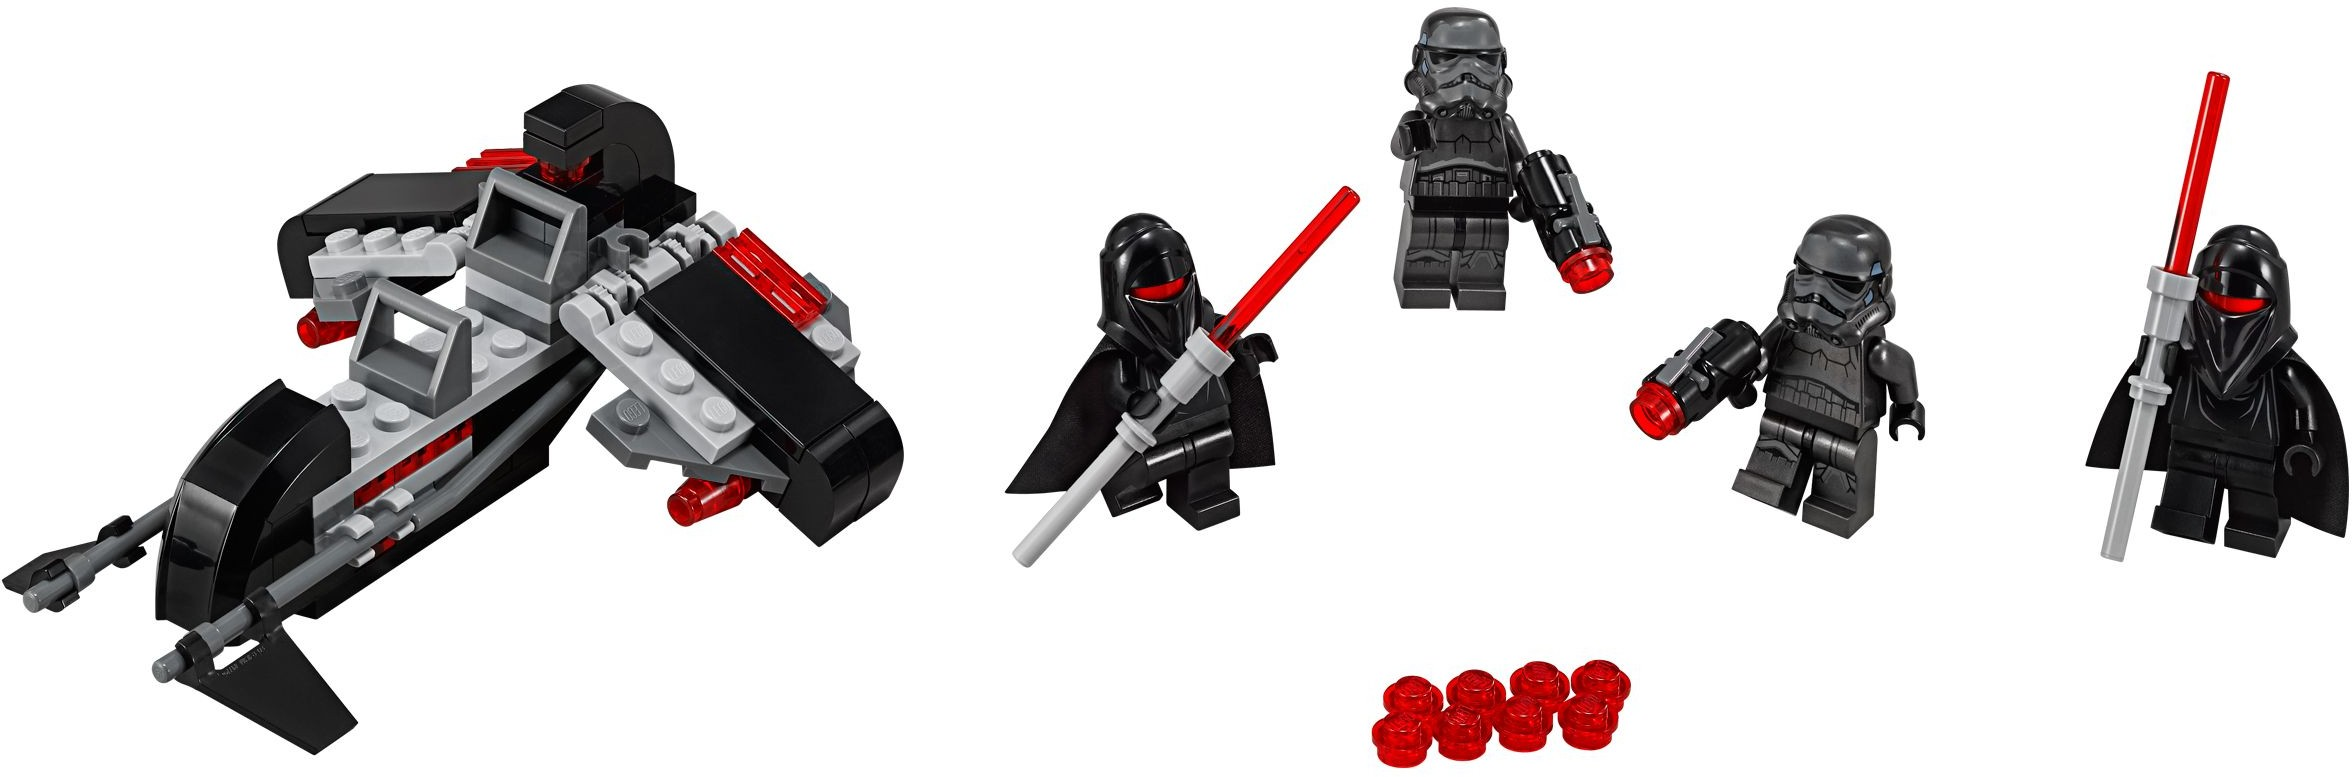 079 Brickset Lego Set Guide And Database